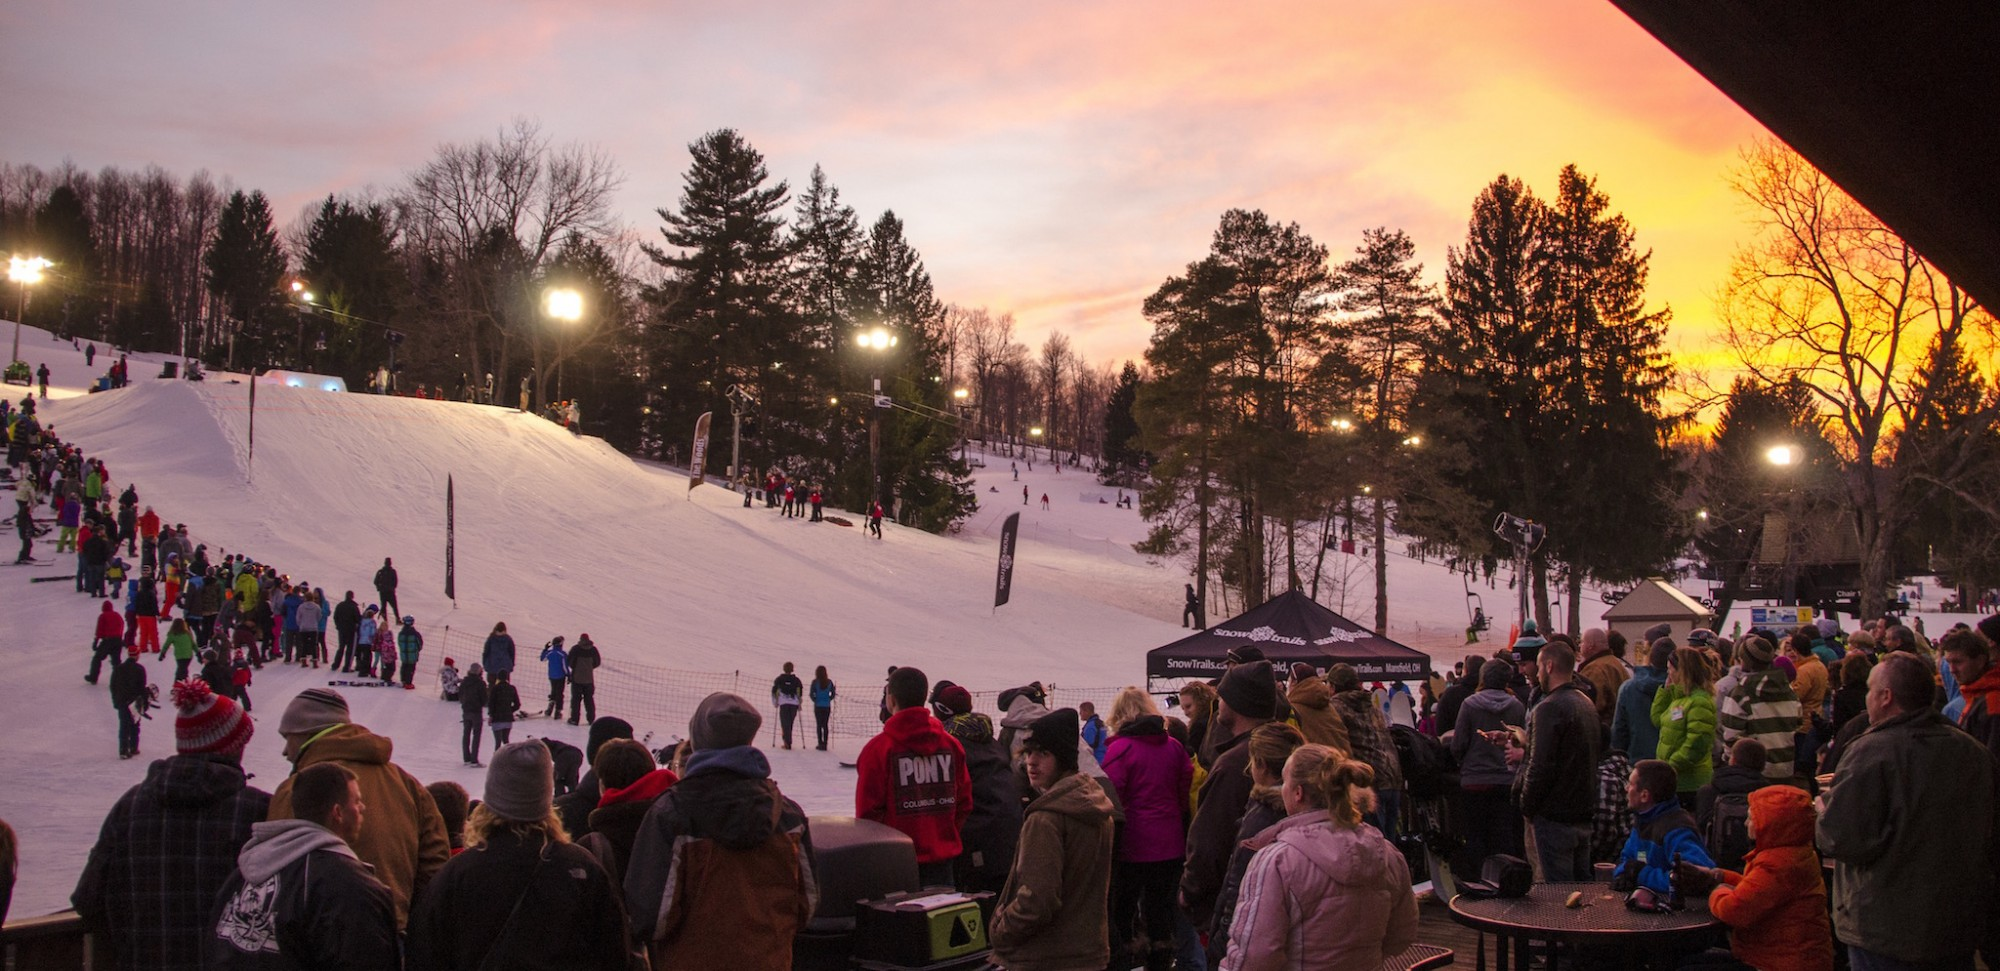 Glimpse of February Events with Big Air this Weekend